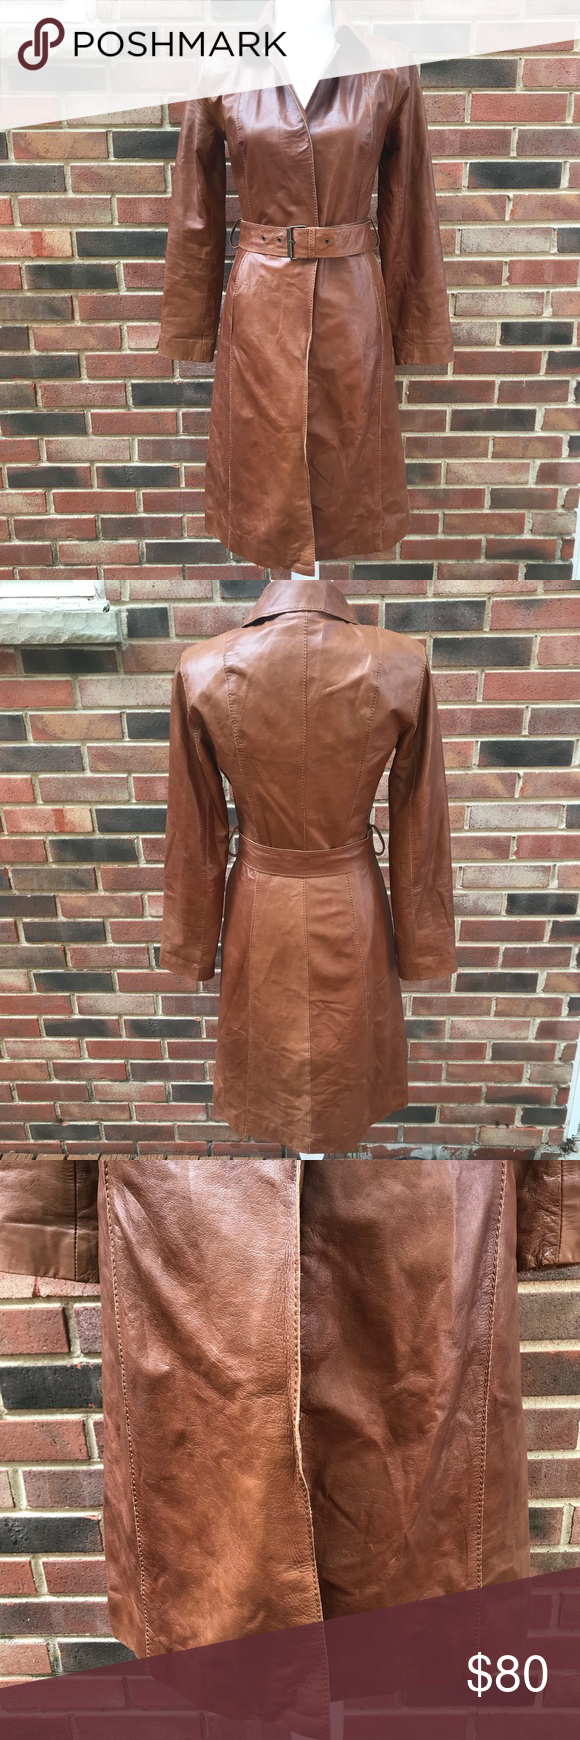 Vintage Wilson's Leather Trench Coat Sz. S Wilsons Leather